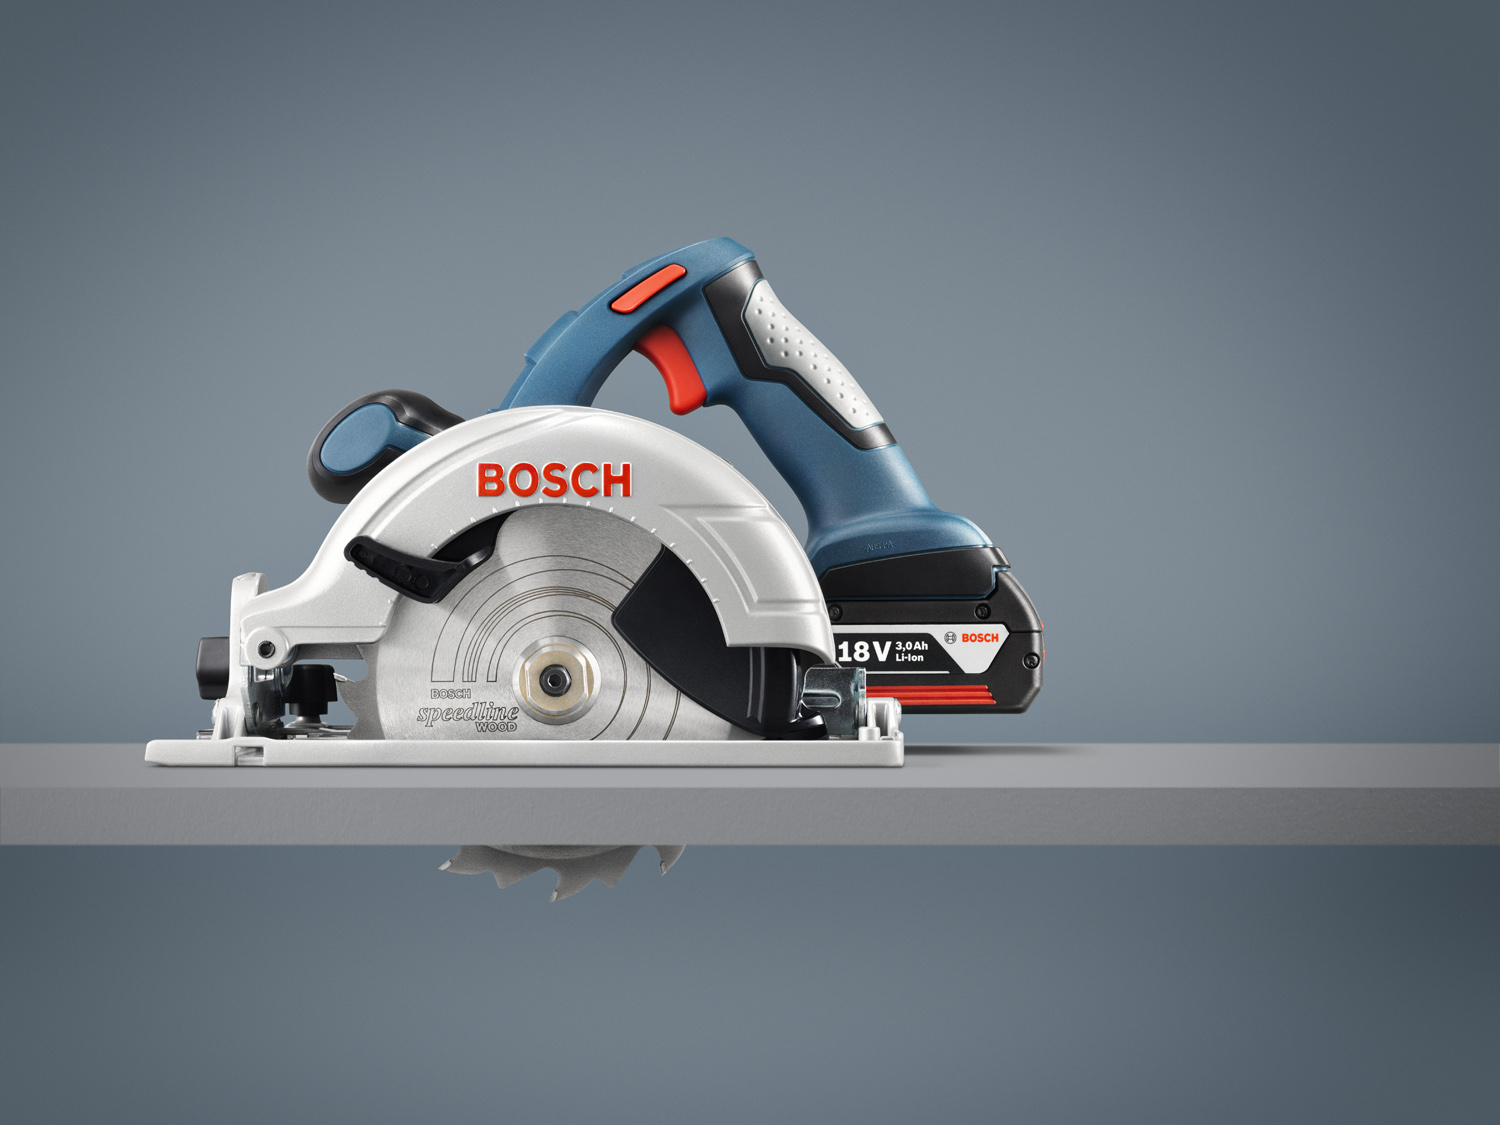 bosch pt test circular saw working comp rough.jpg